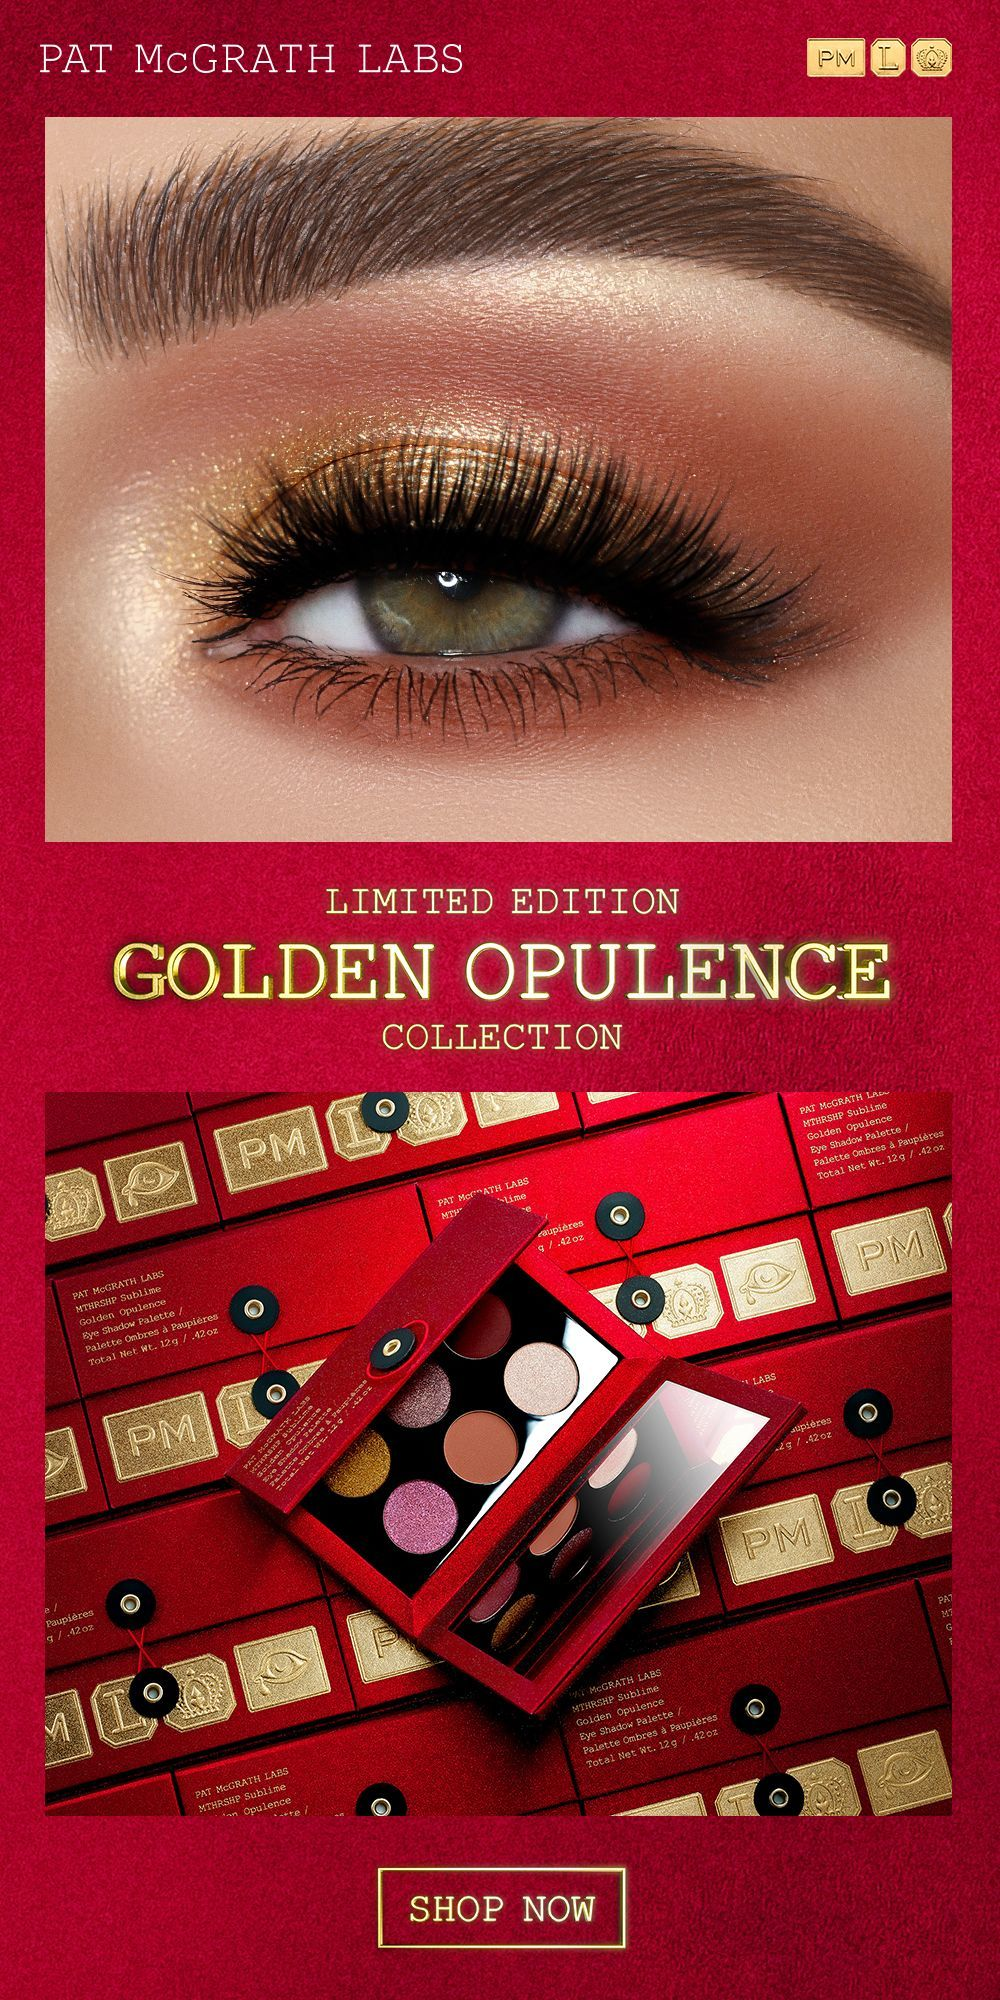 Pat McGrath Labs MTHRSHP Sublime: Golden Opulence